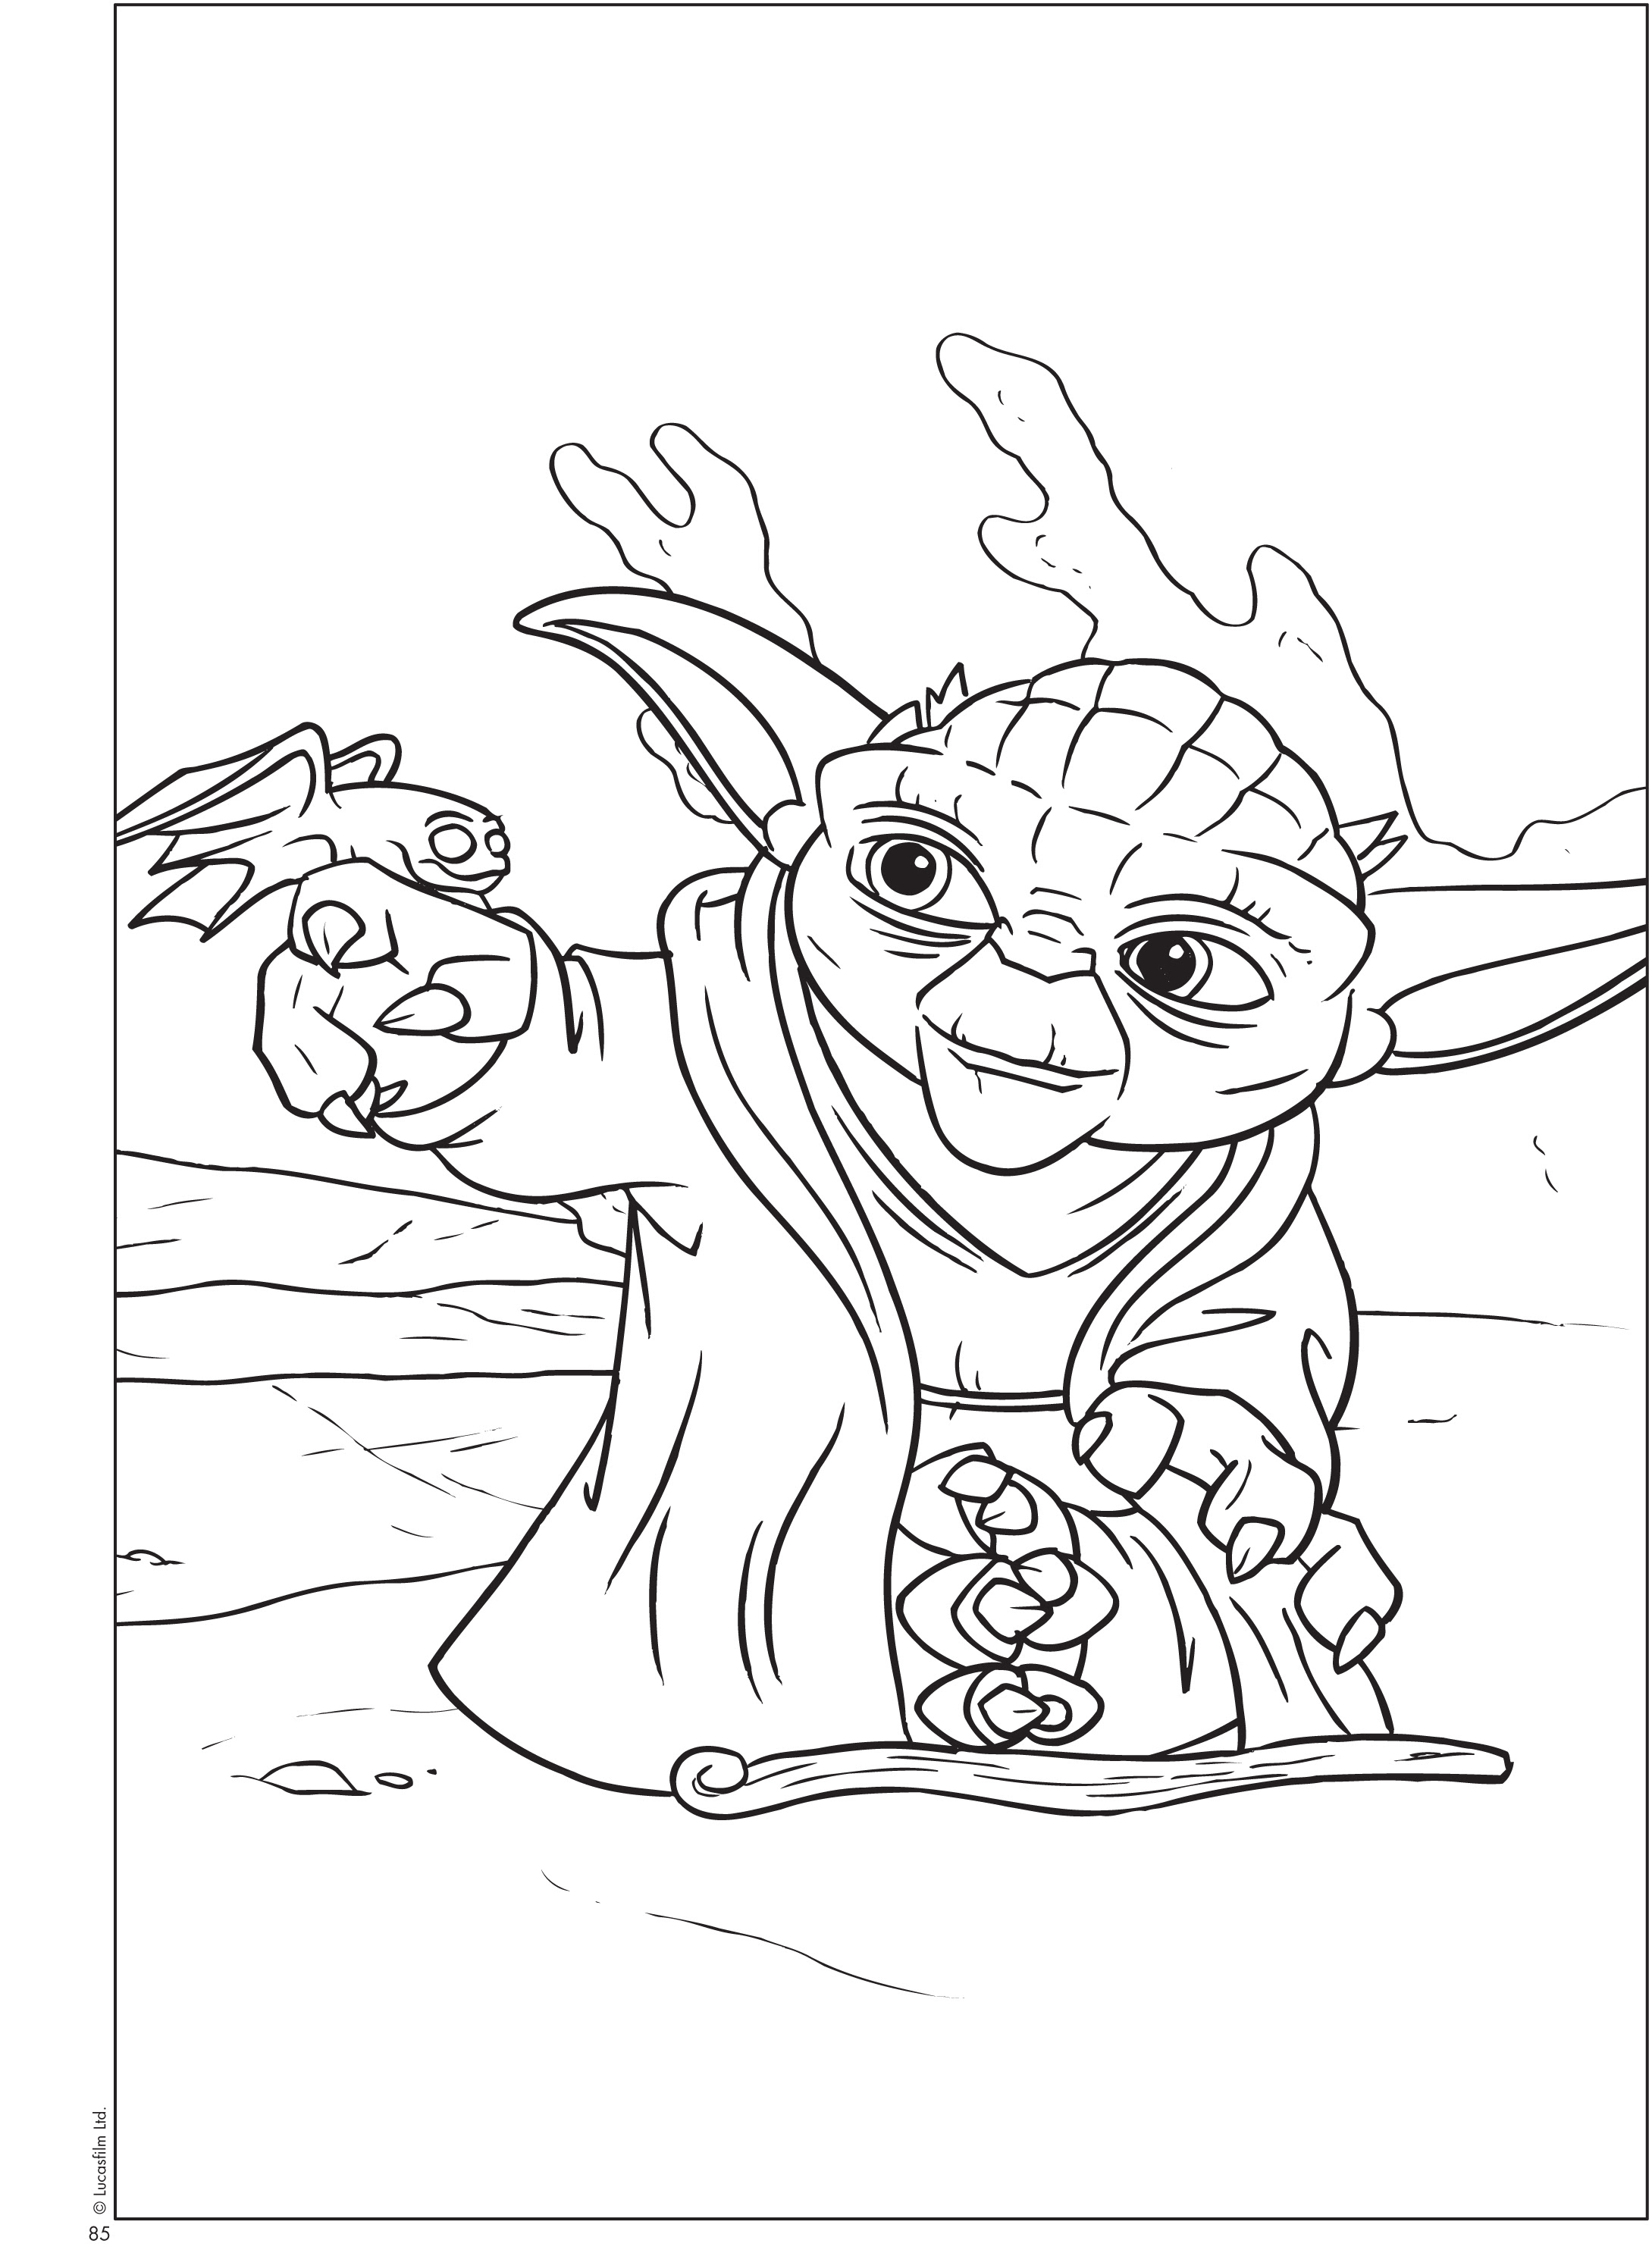 awesome lego star wars coloring book coloring book of coloring page with coloriage lego star wars